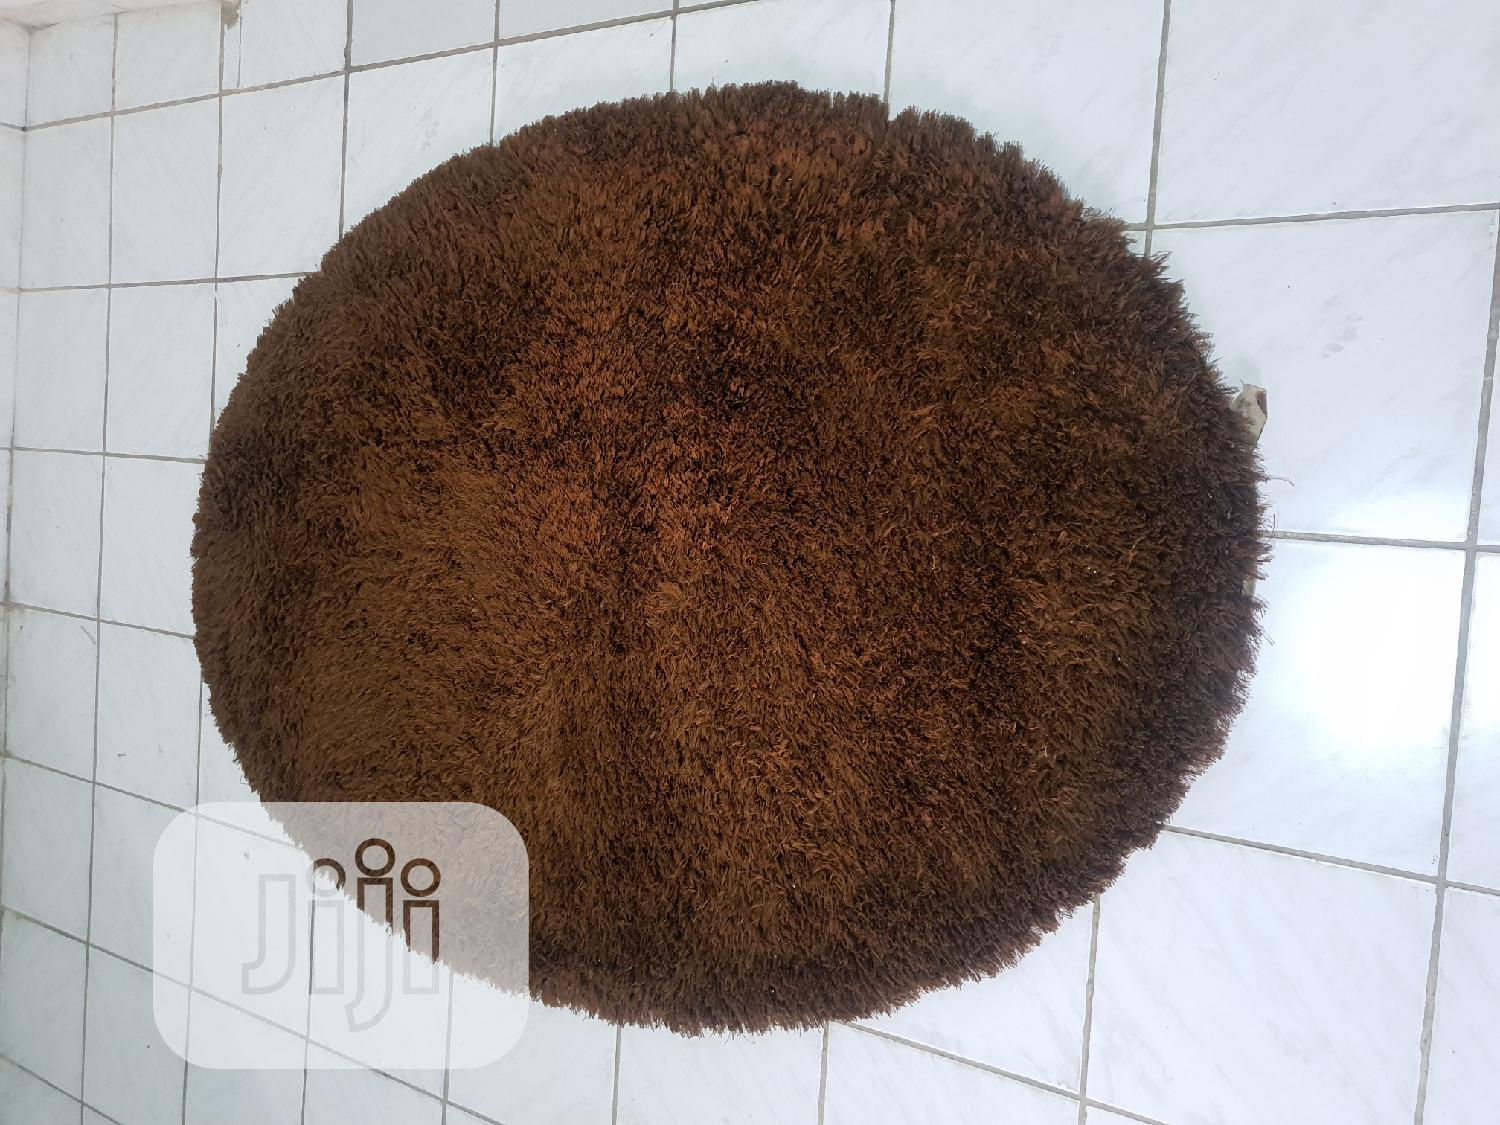 Archive: Oval Shaped Rug 3x5 Brown: Carpet